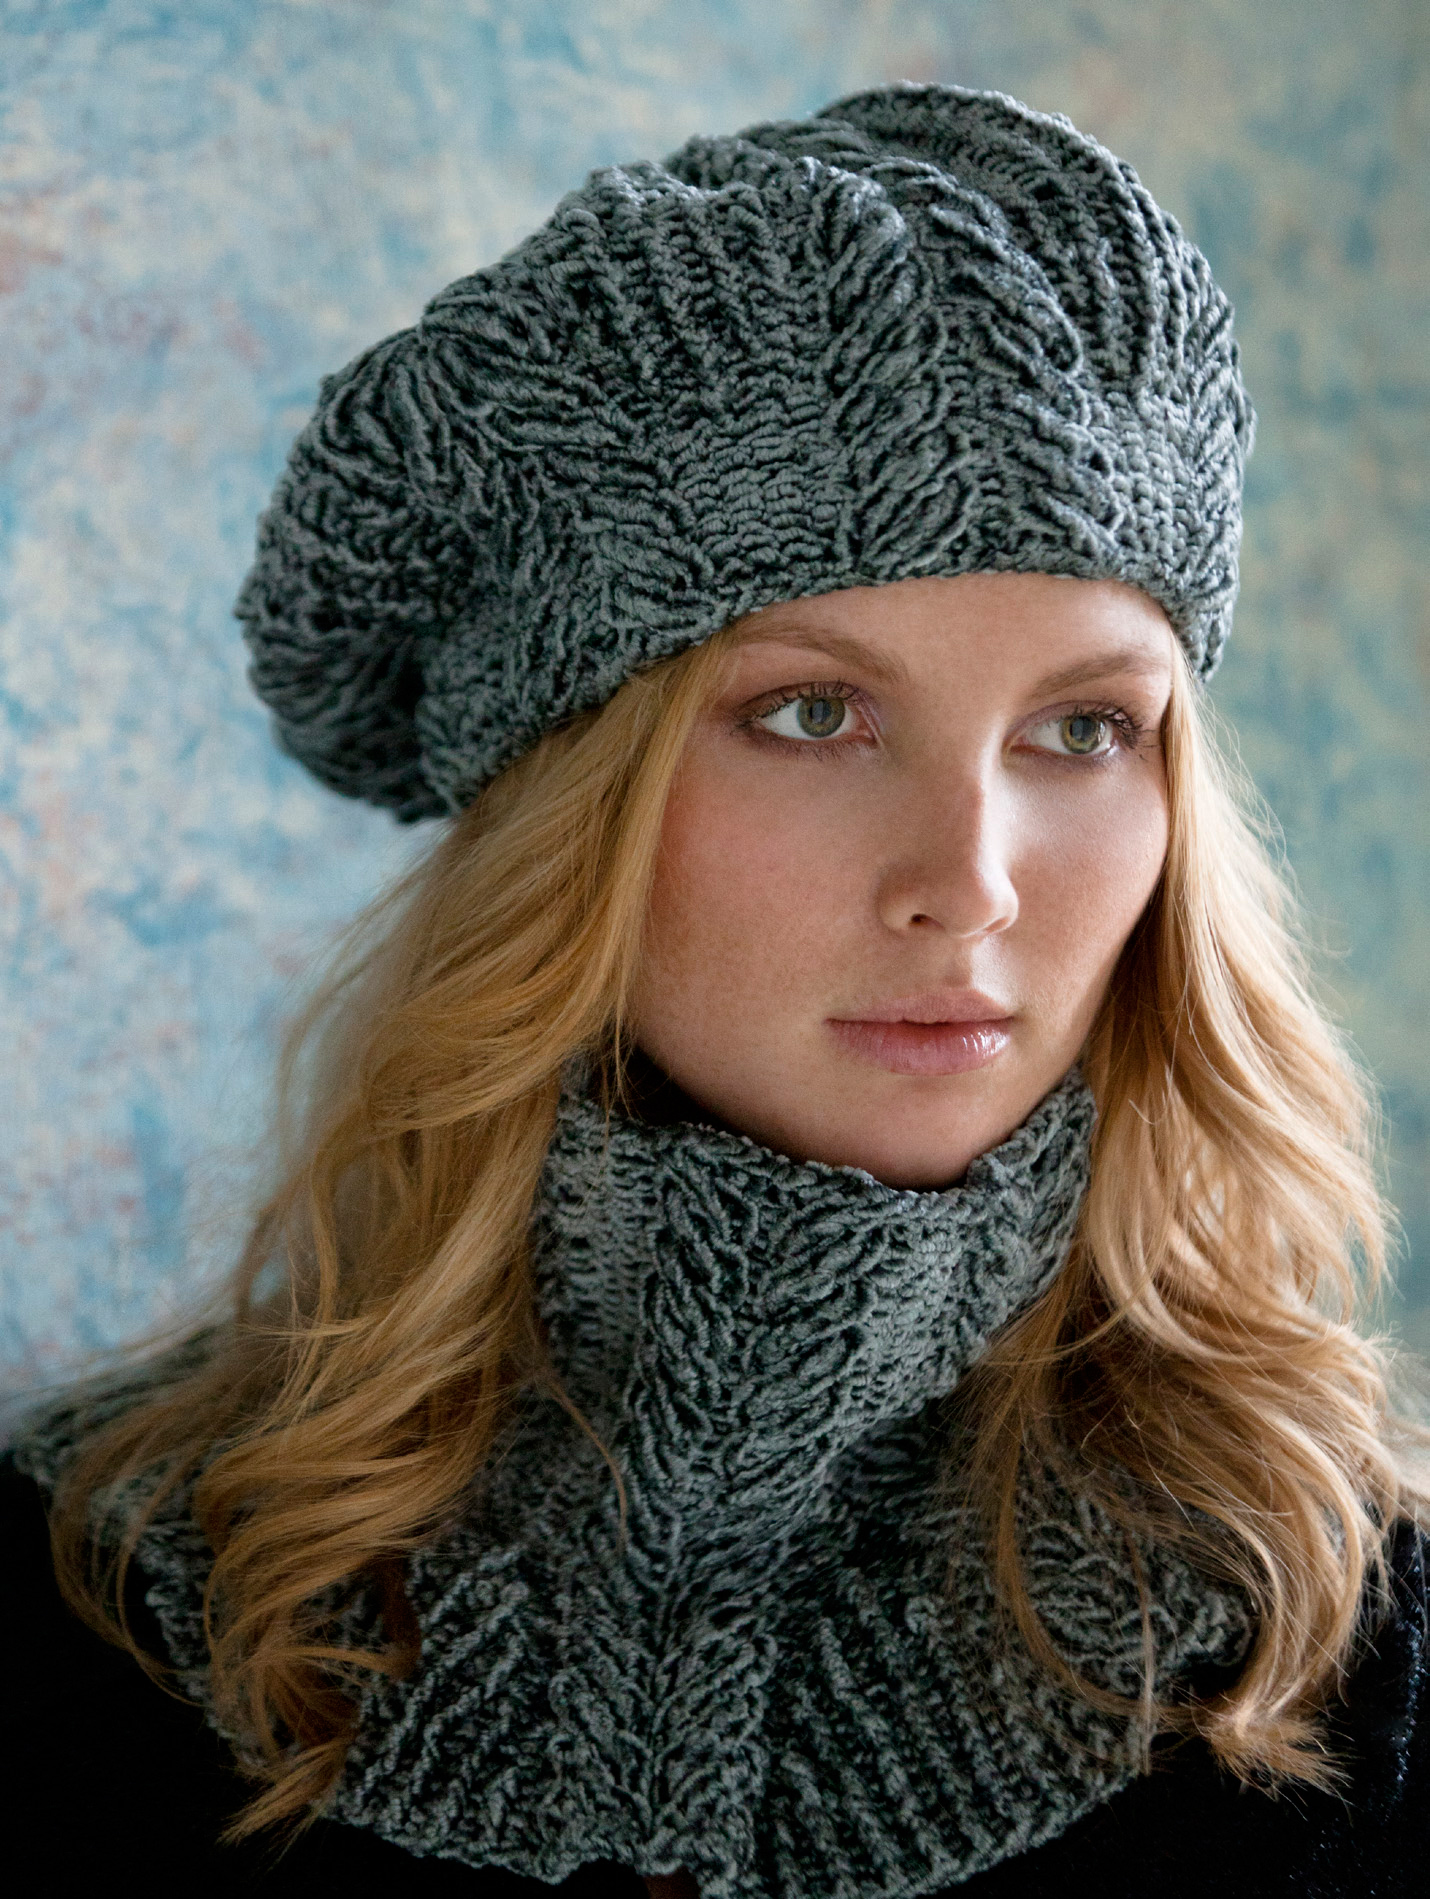 Beret Knitting Pattern Easy : KNIT OR CROCHET BERET PATTERN   Easy Crochet Patterns